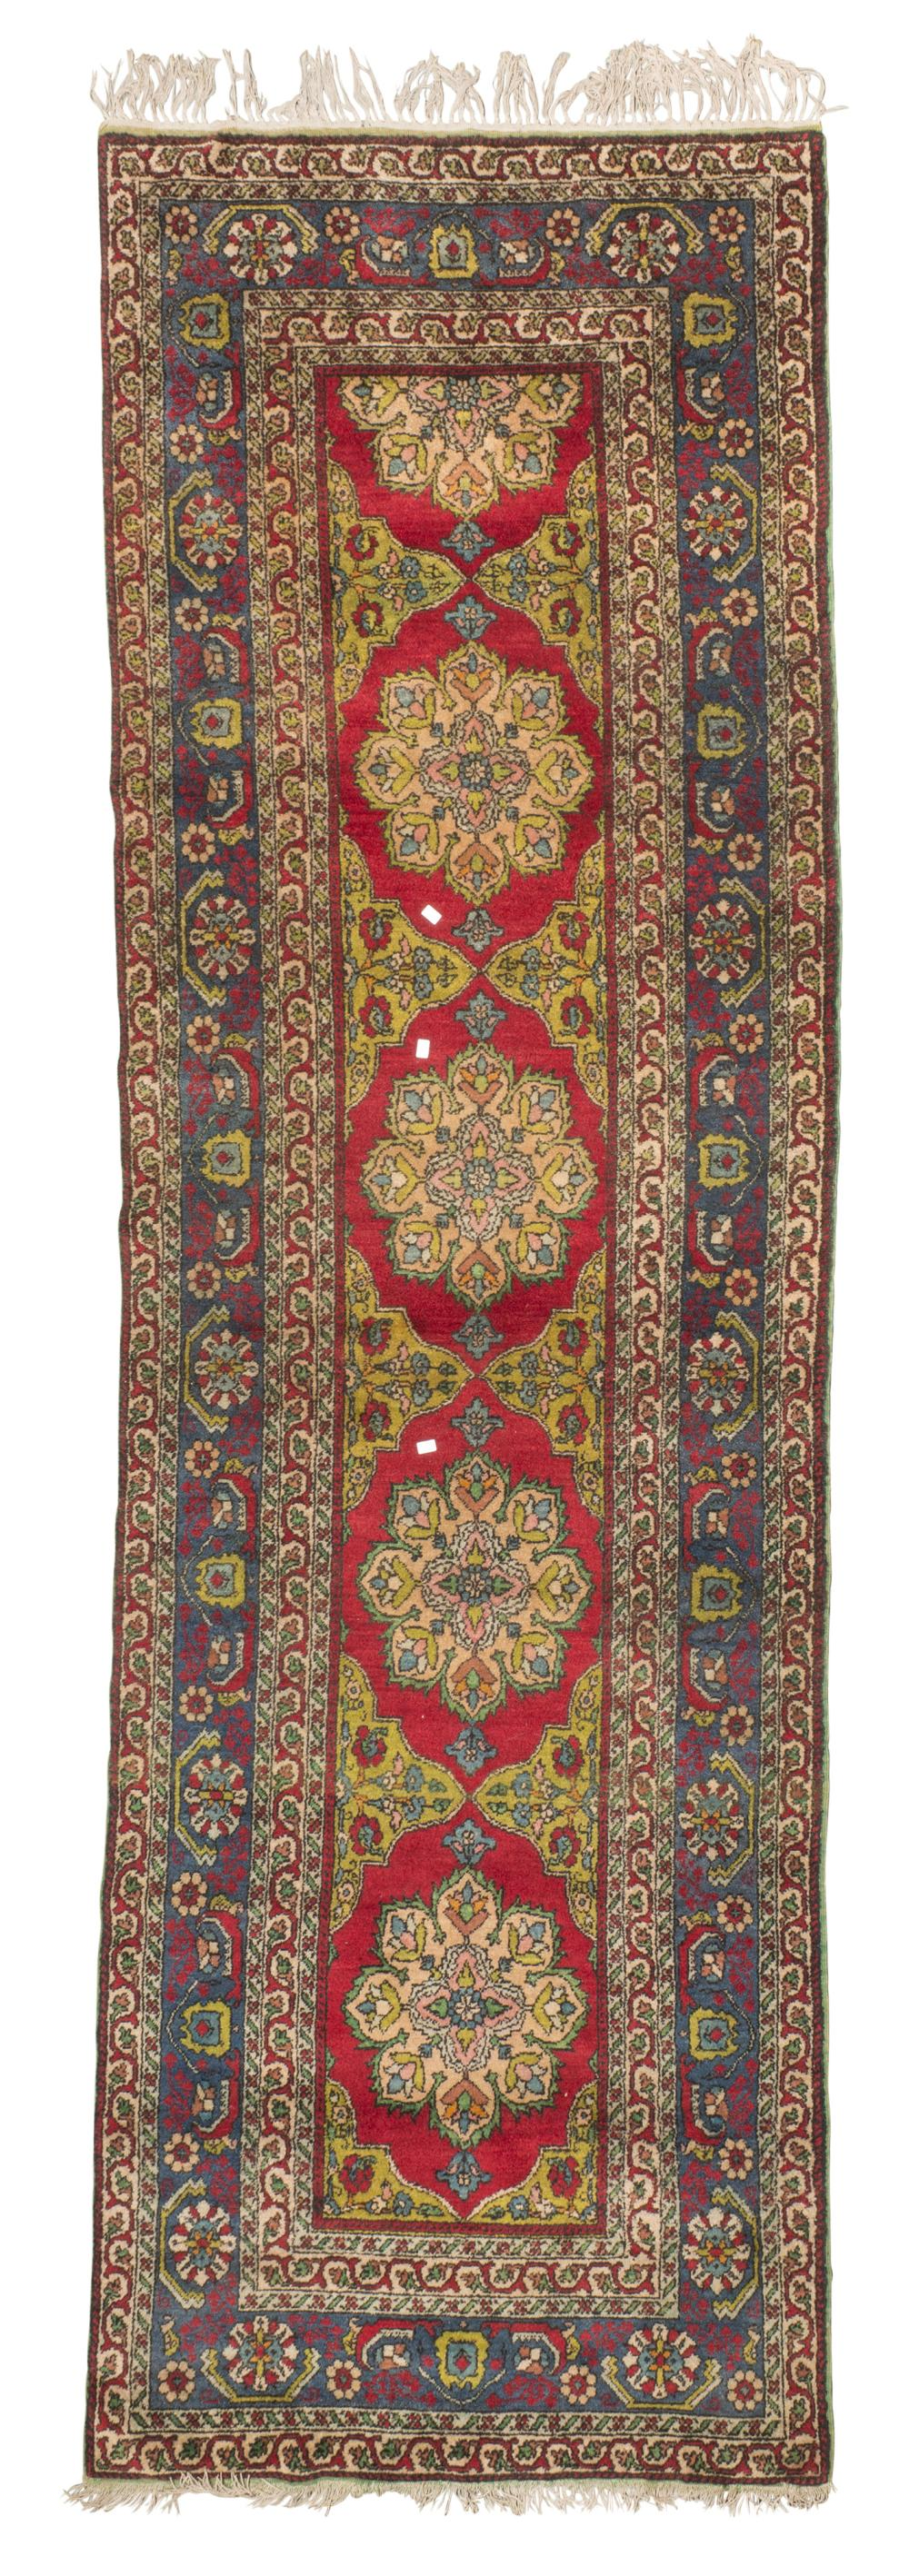 PERSIAN LILIAN RUNNER, FIRST HALF OF THE 20TH CENTURY